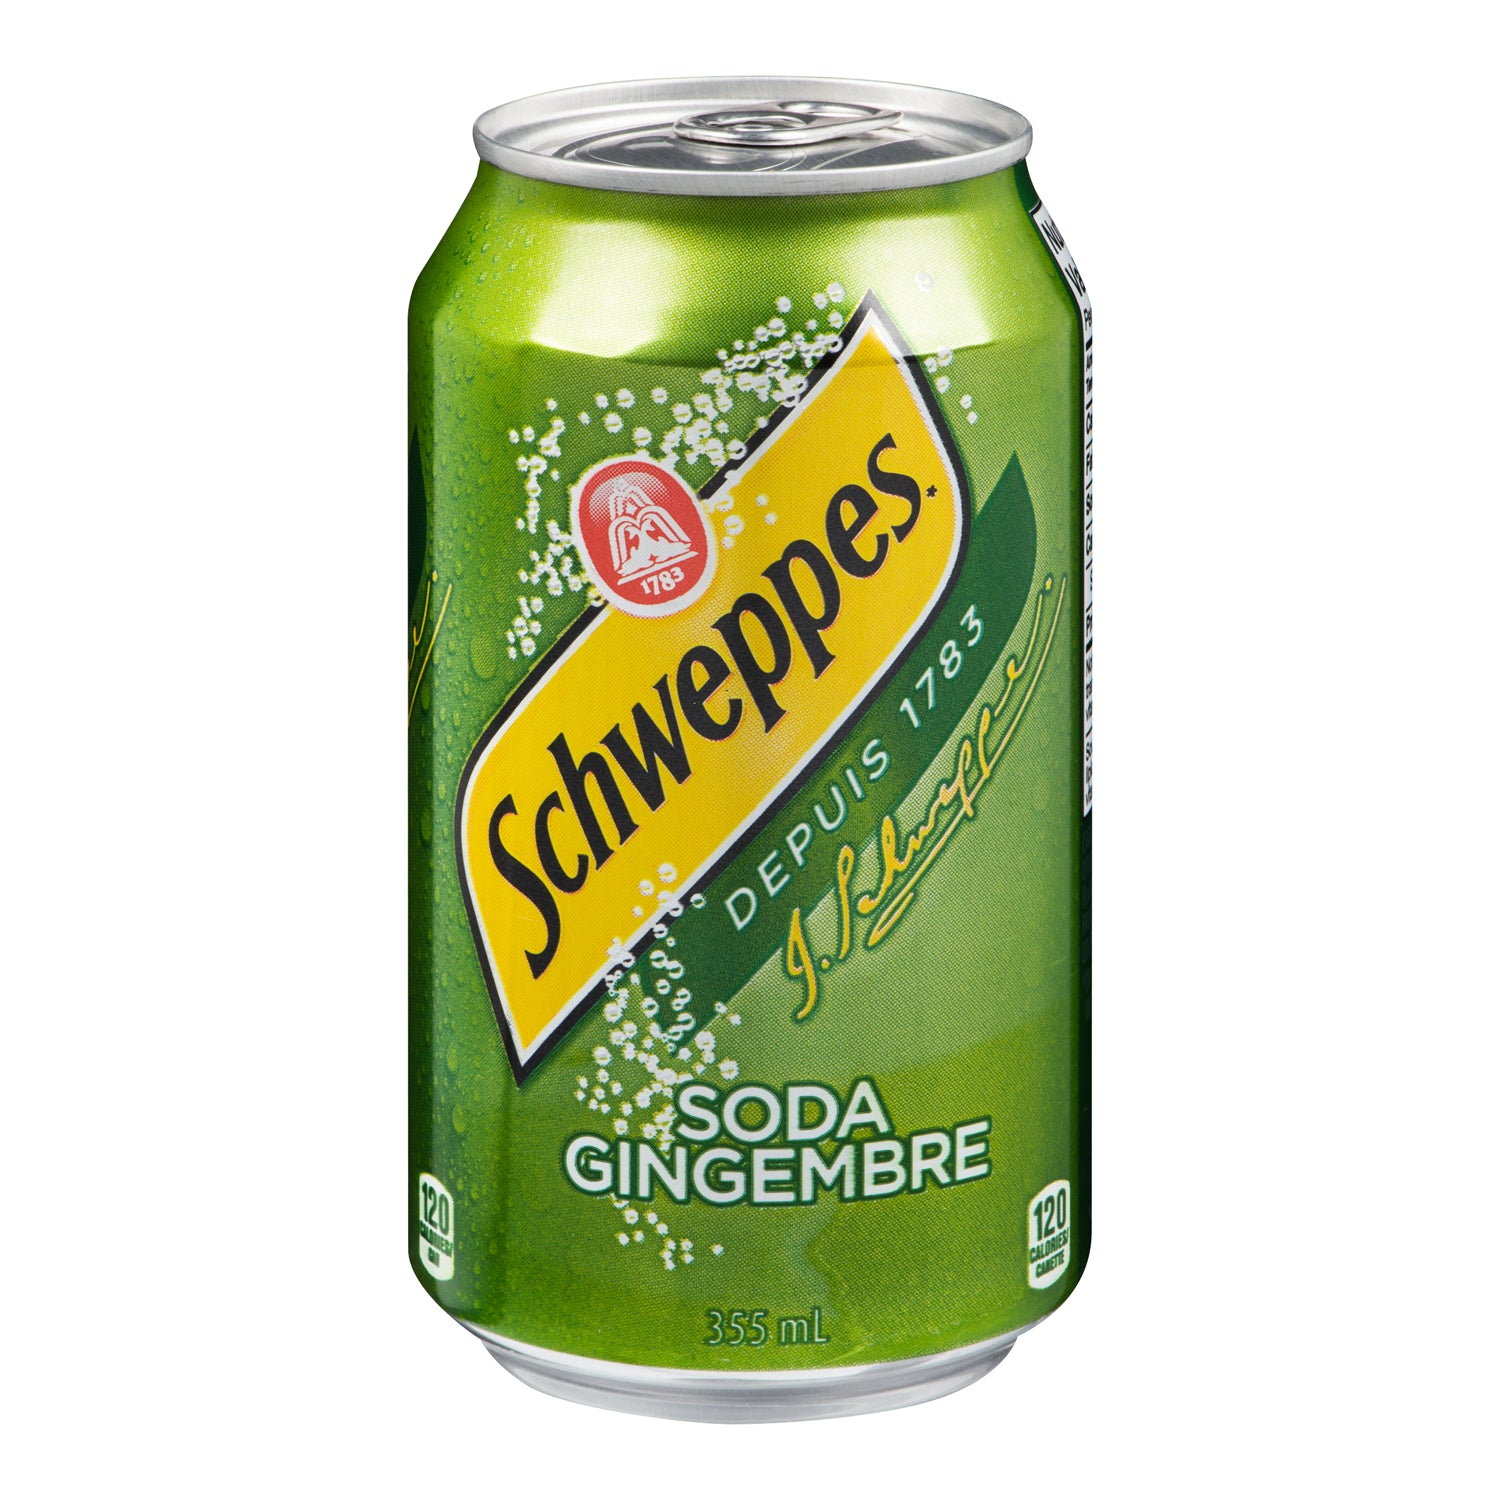 Schwepps Ginger Ale Soft Drink Can 355 ml - 12 Pack [$0.44/each]